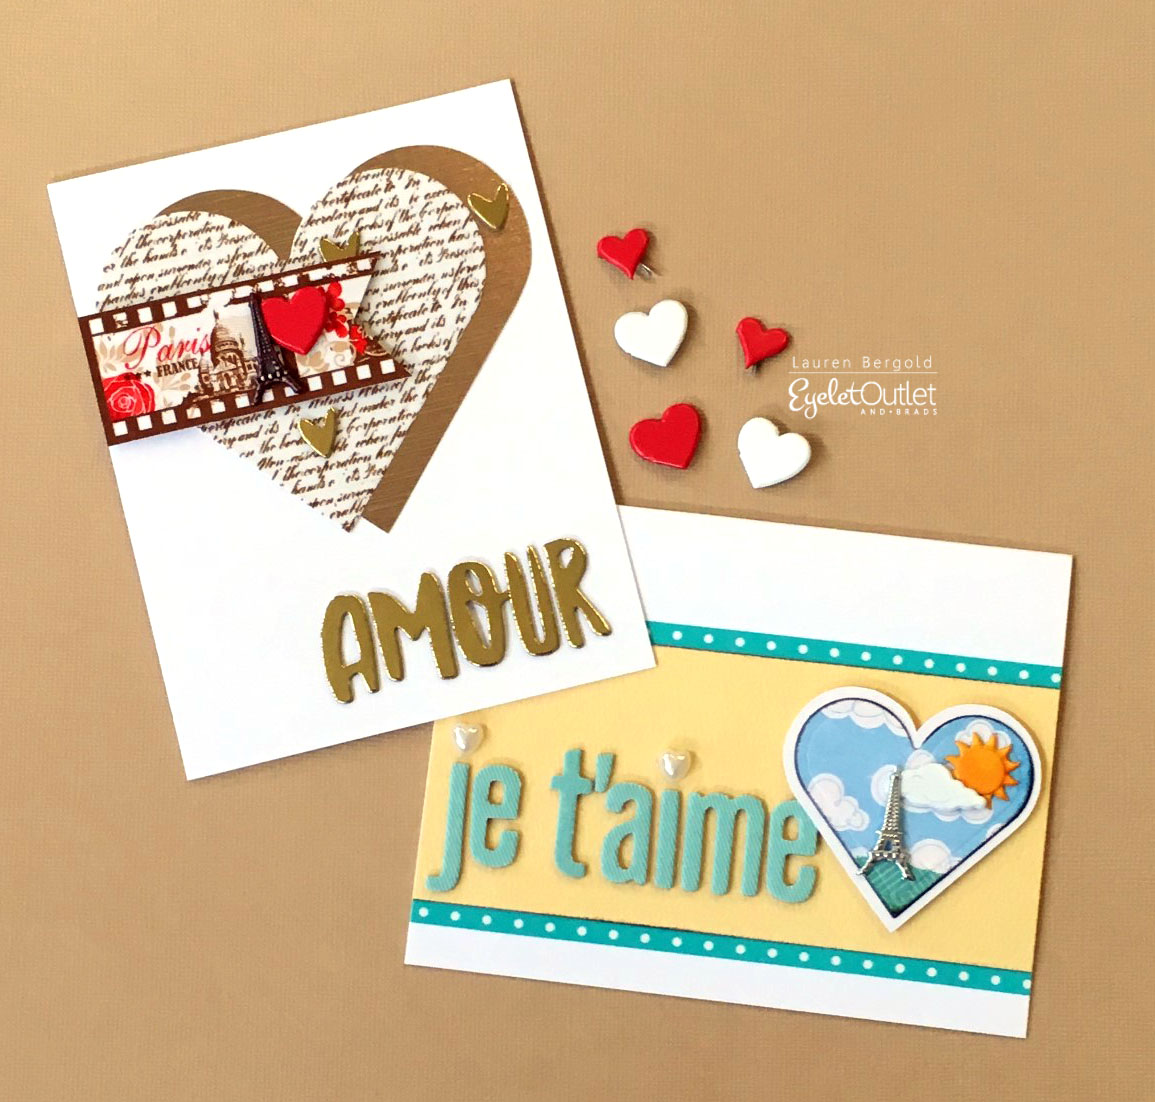 d963b76c63 Hi folks, it's Lauren again, here to show off a couple of Valentines with a  French accent!